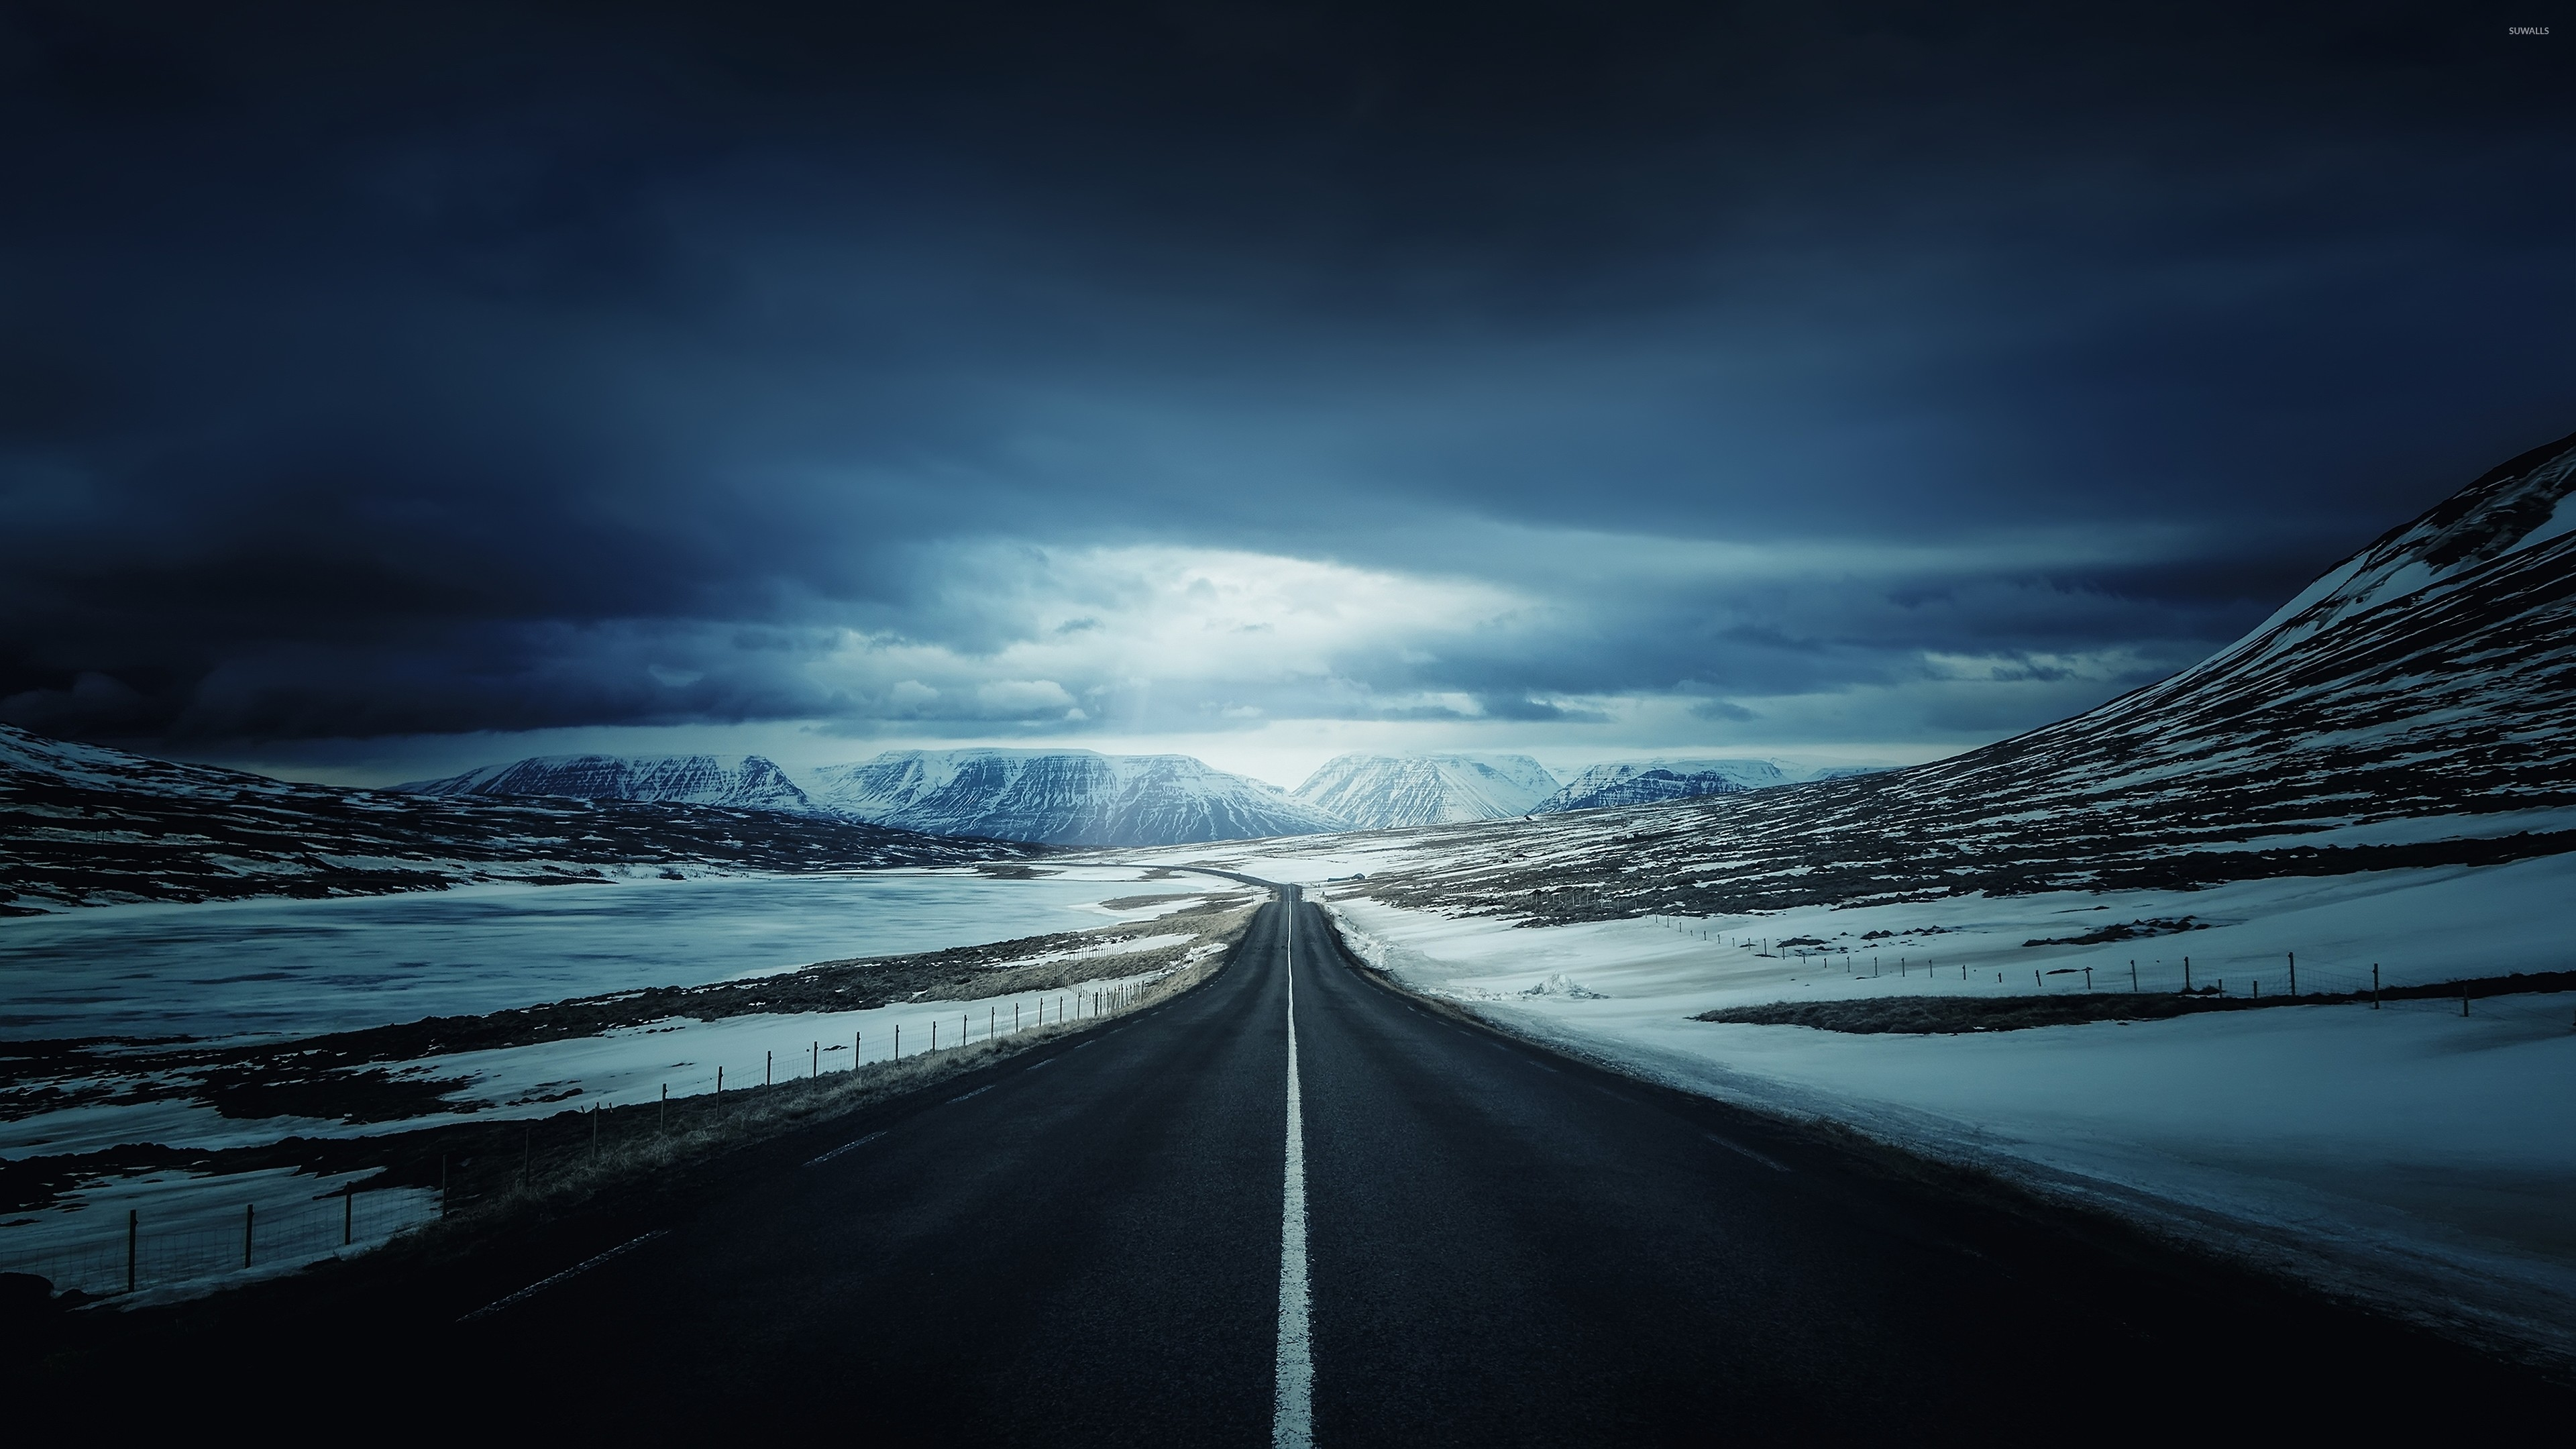 Road towards the snowy mountains wallpaper